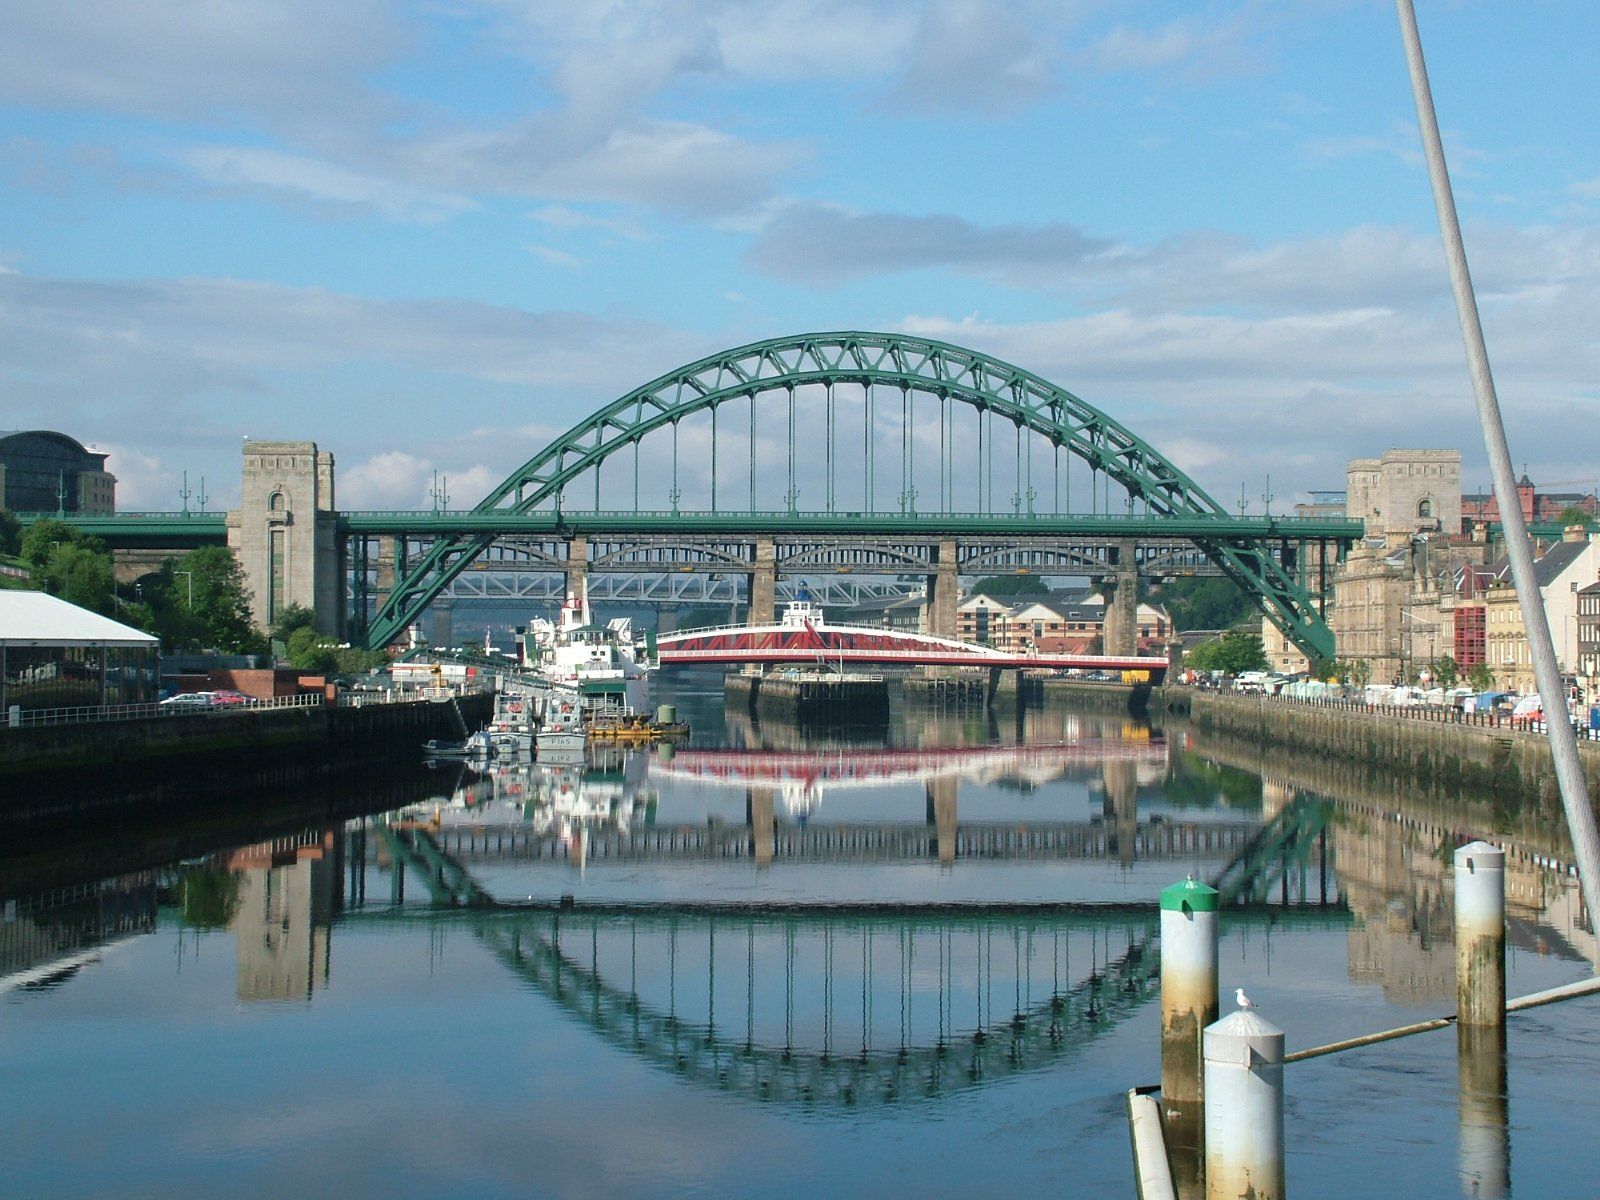 File:Tyne Bridge - Newcastle Upon Tyne - England - 2004-08-14.jpg ...